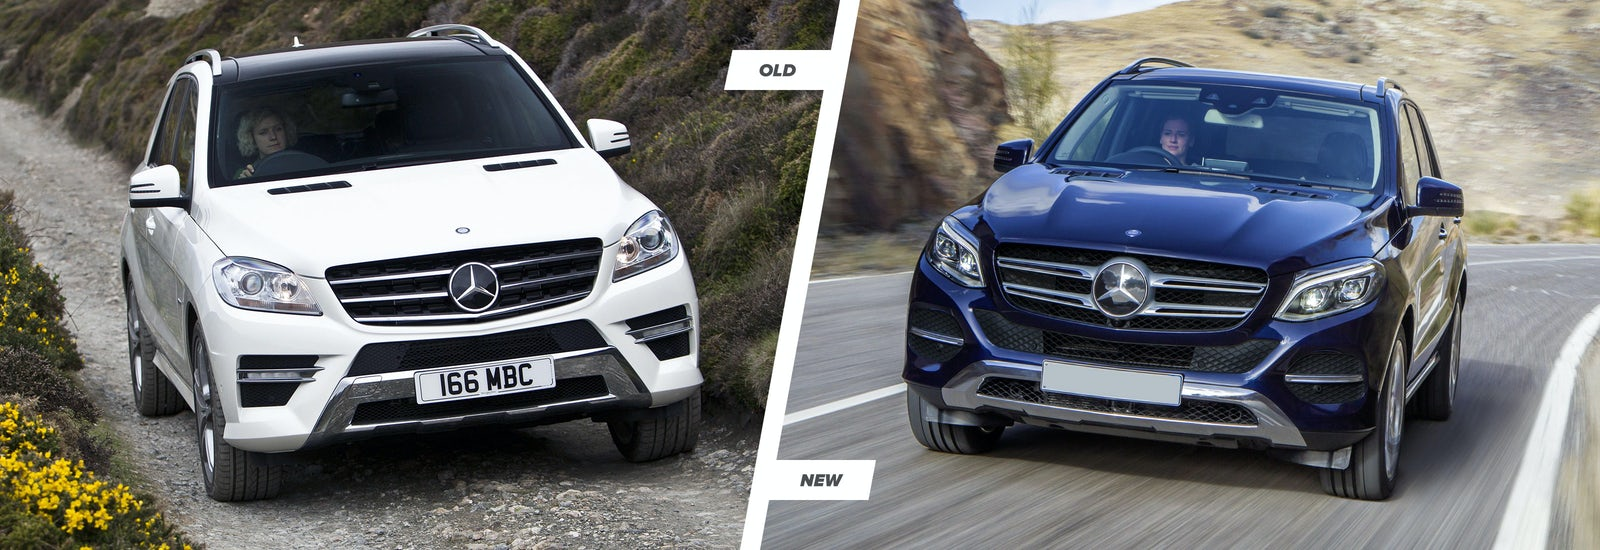 2015 Mercedes Gle Vs M Class Suv Old Vs New Carwow